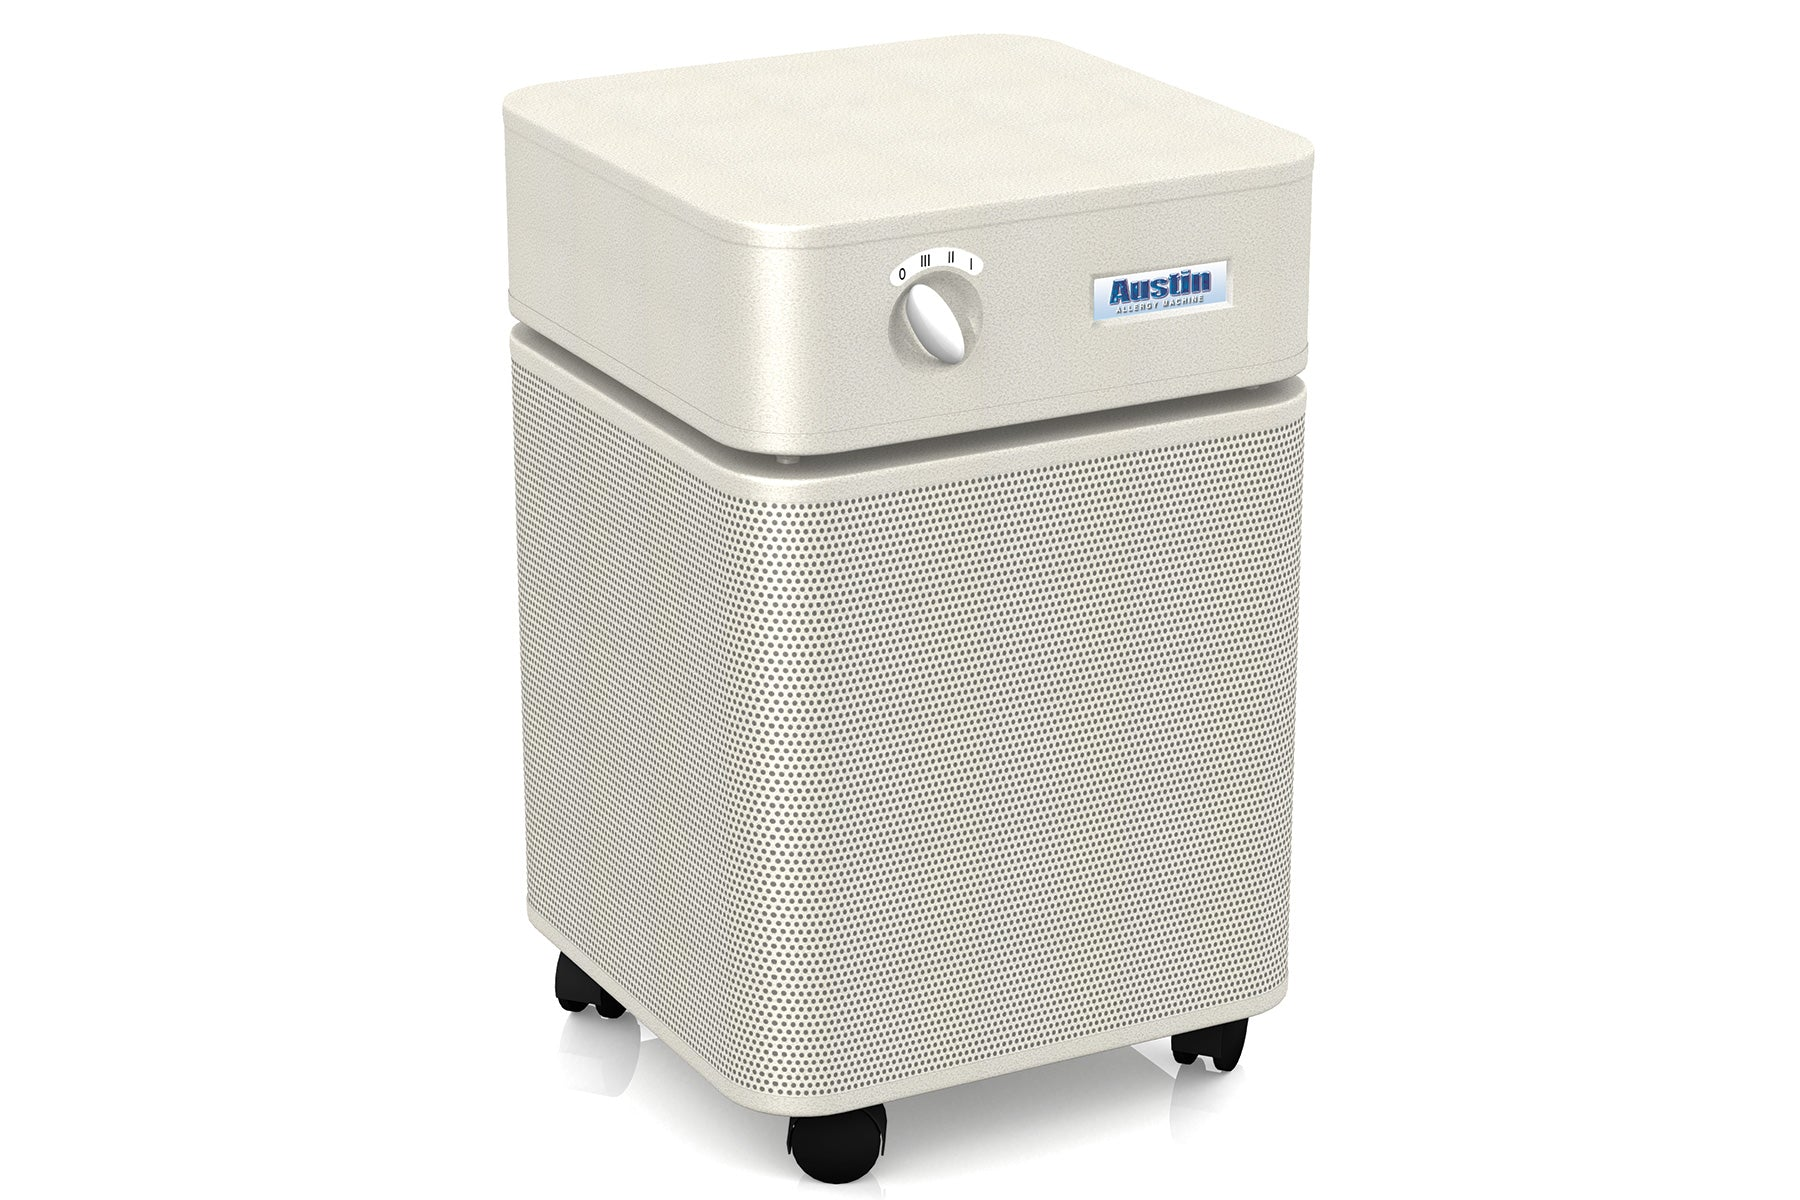 AirPurifier Austin Air Allergy Machine® B405 Air Purifier(s)